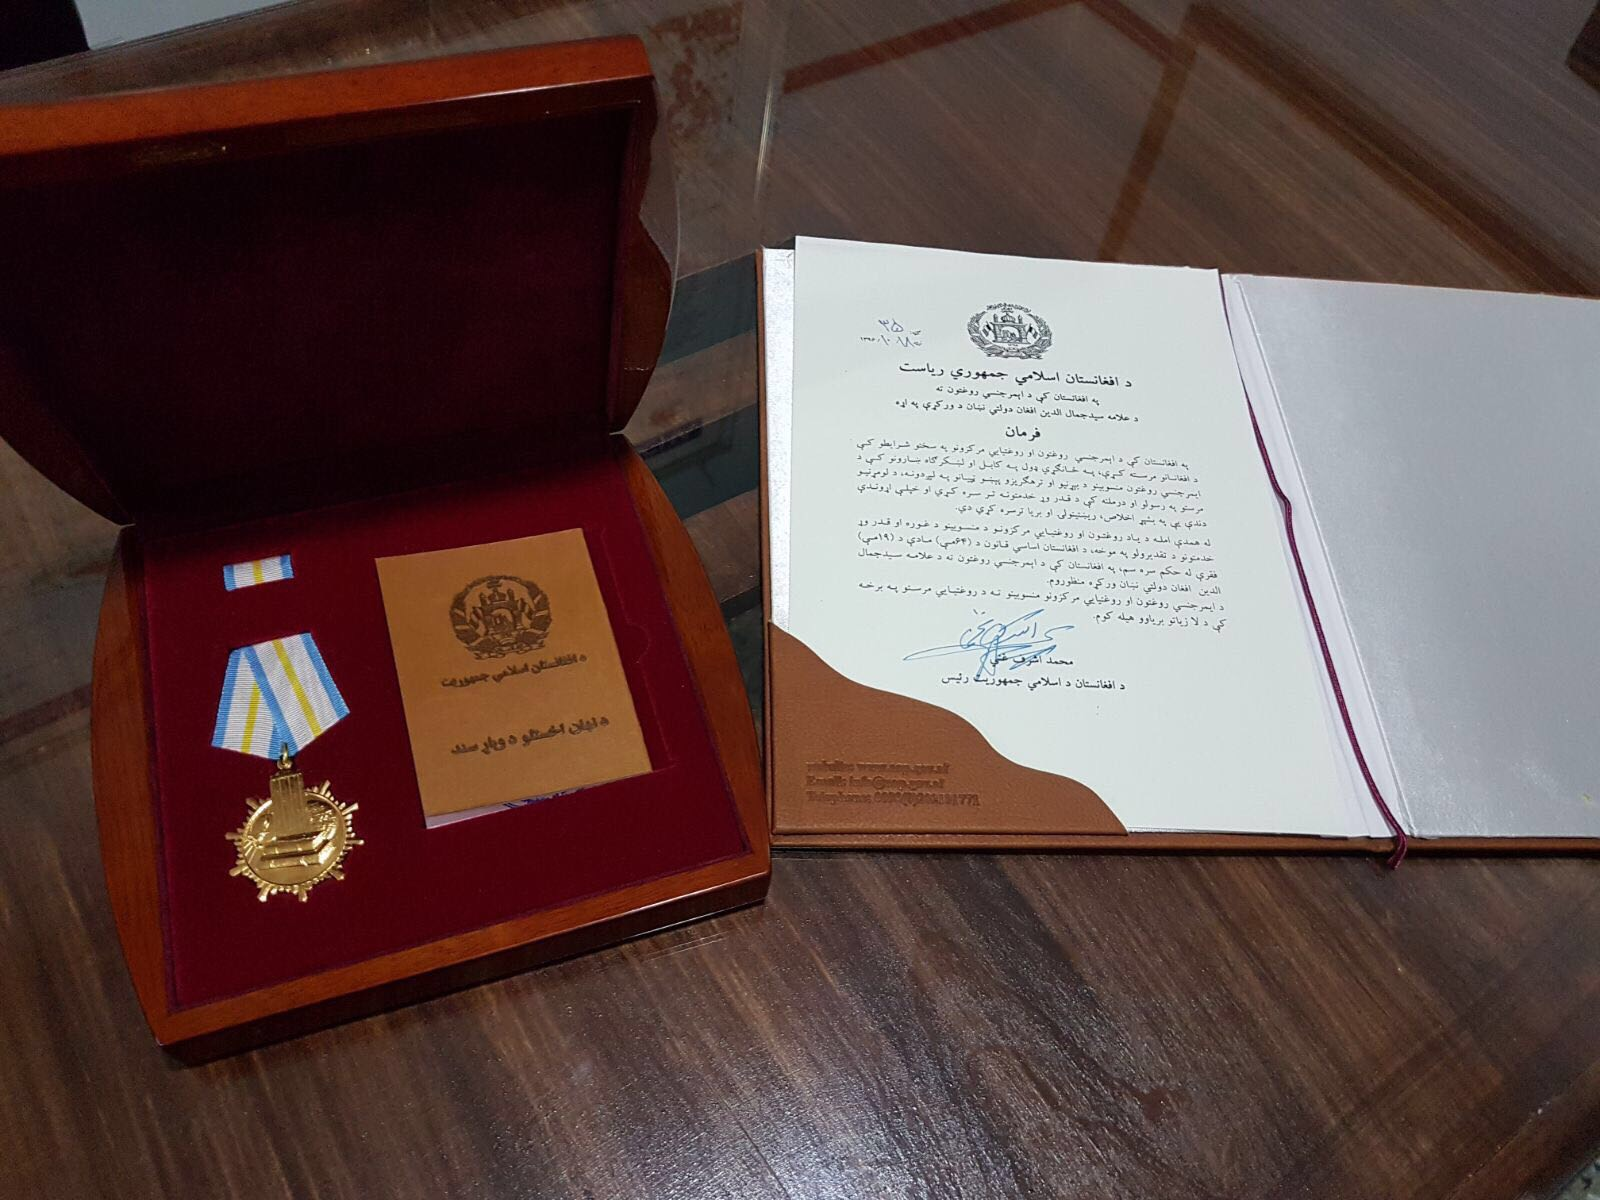 The 'Allama Sayed Jamaluddin' prize awarded to EMERGENCY for its work in Afghanistan